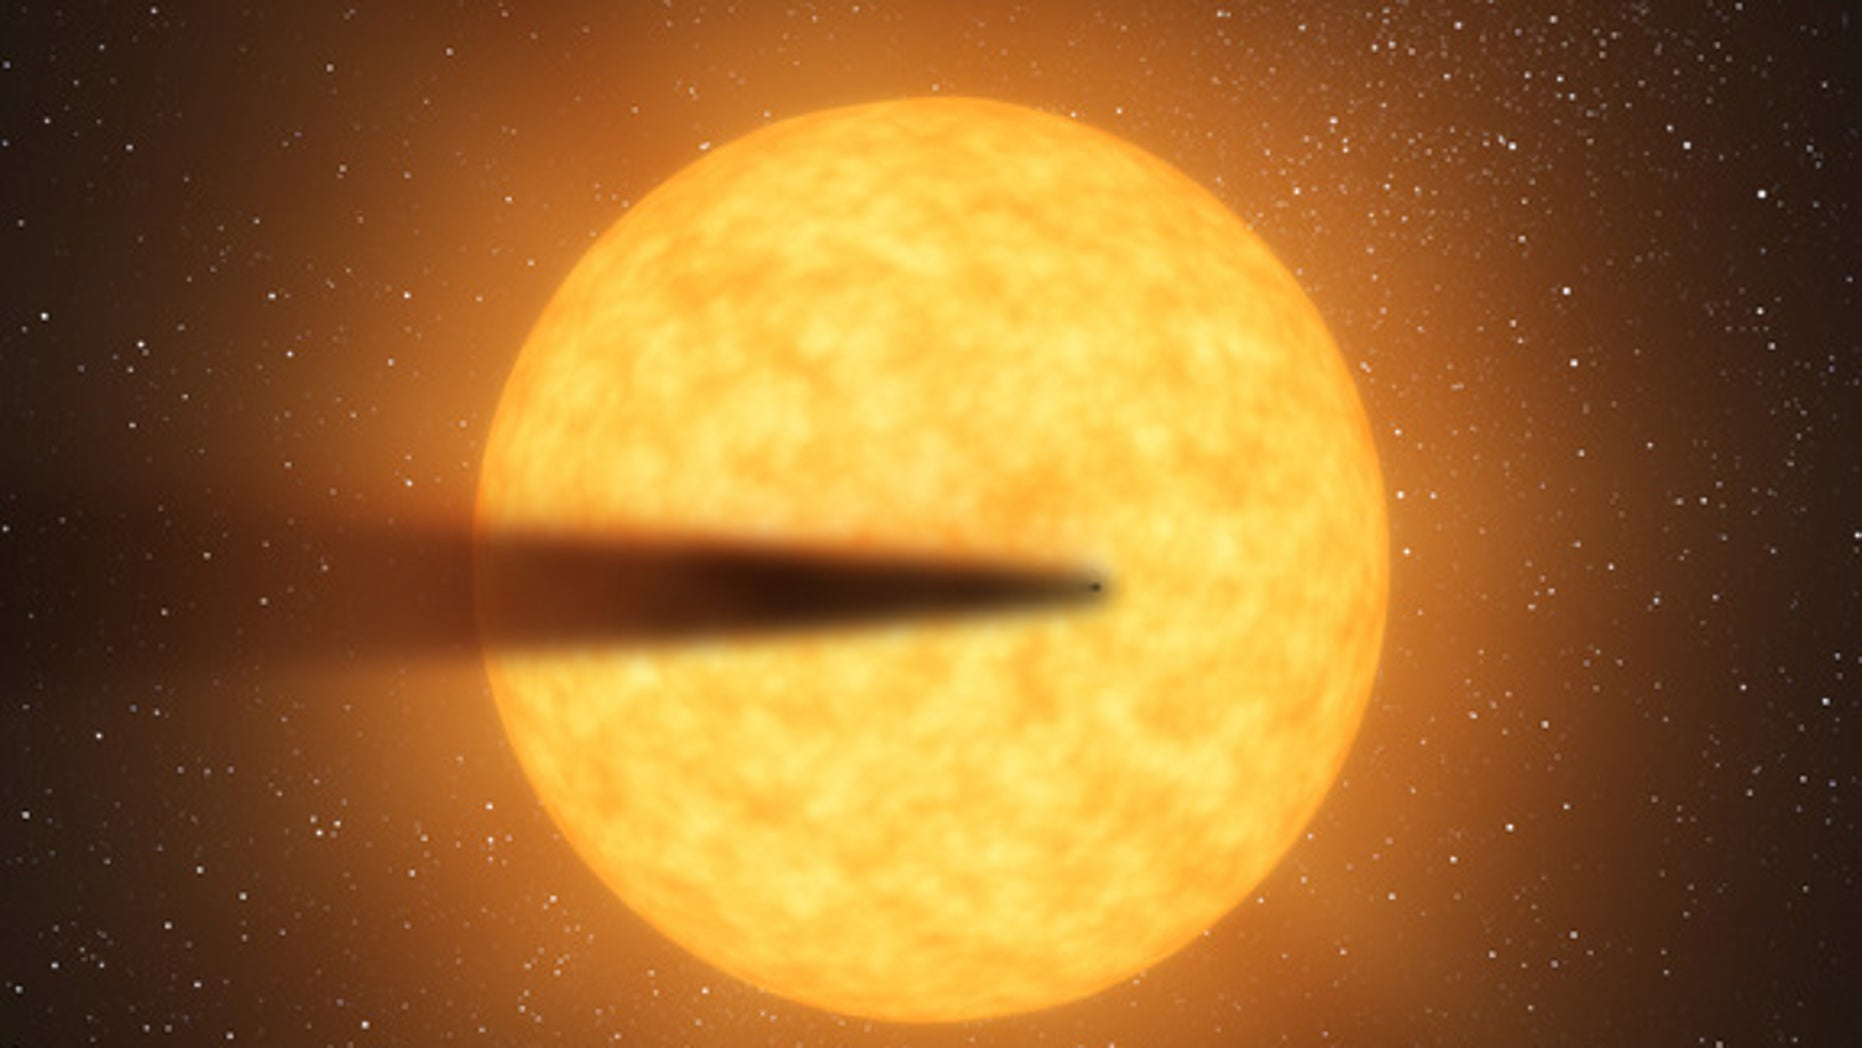 This artist's concept depicts a cometlike tail of a possible disintegrating super Mercury-size planet candidate as it transits, or crosses, its parent star, named KIC 12557548. At an orbital distance of only twice the diameter of its star, the